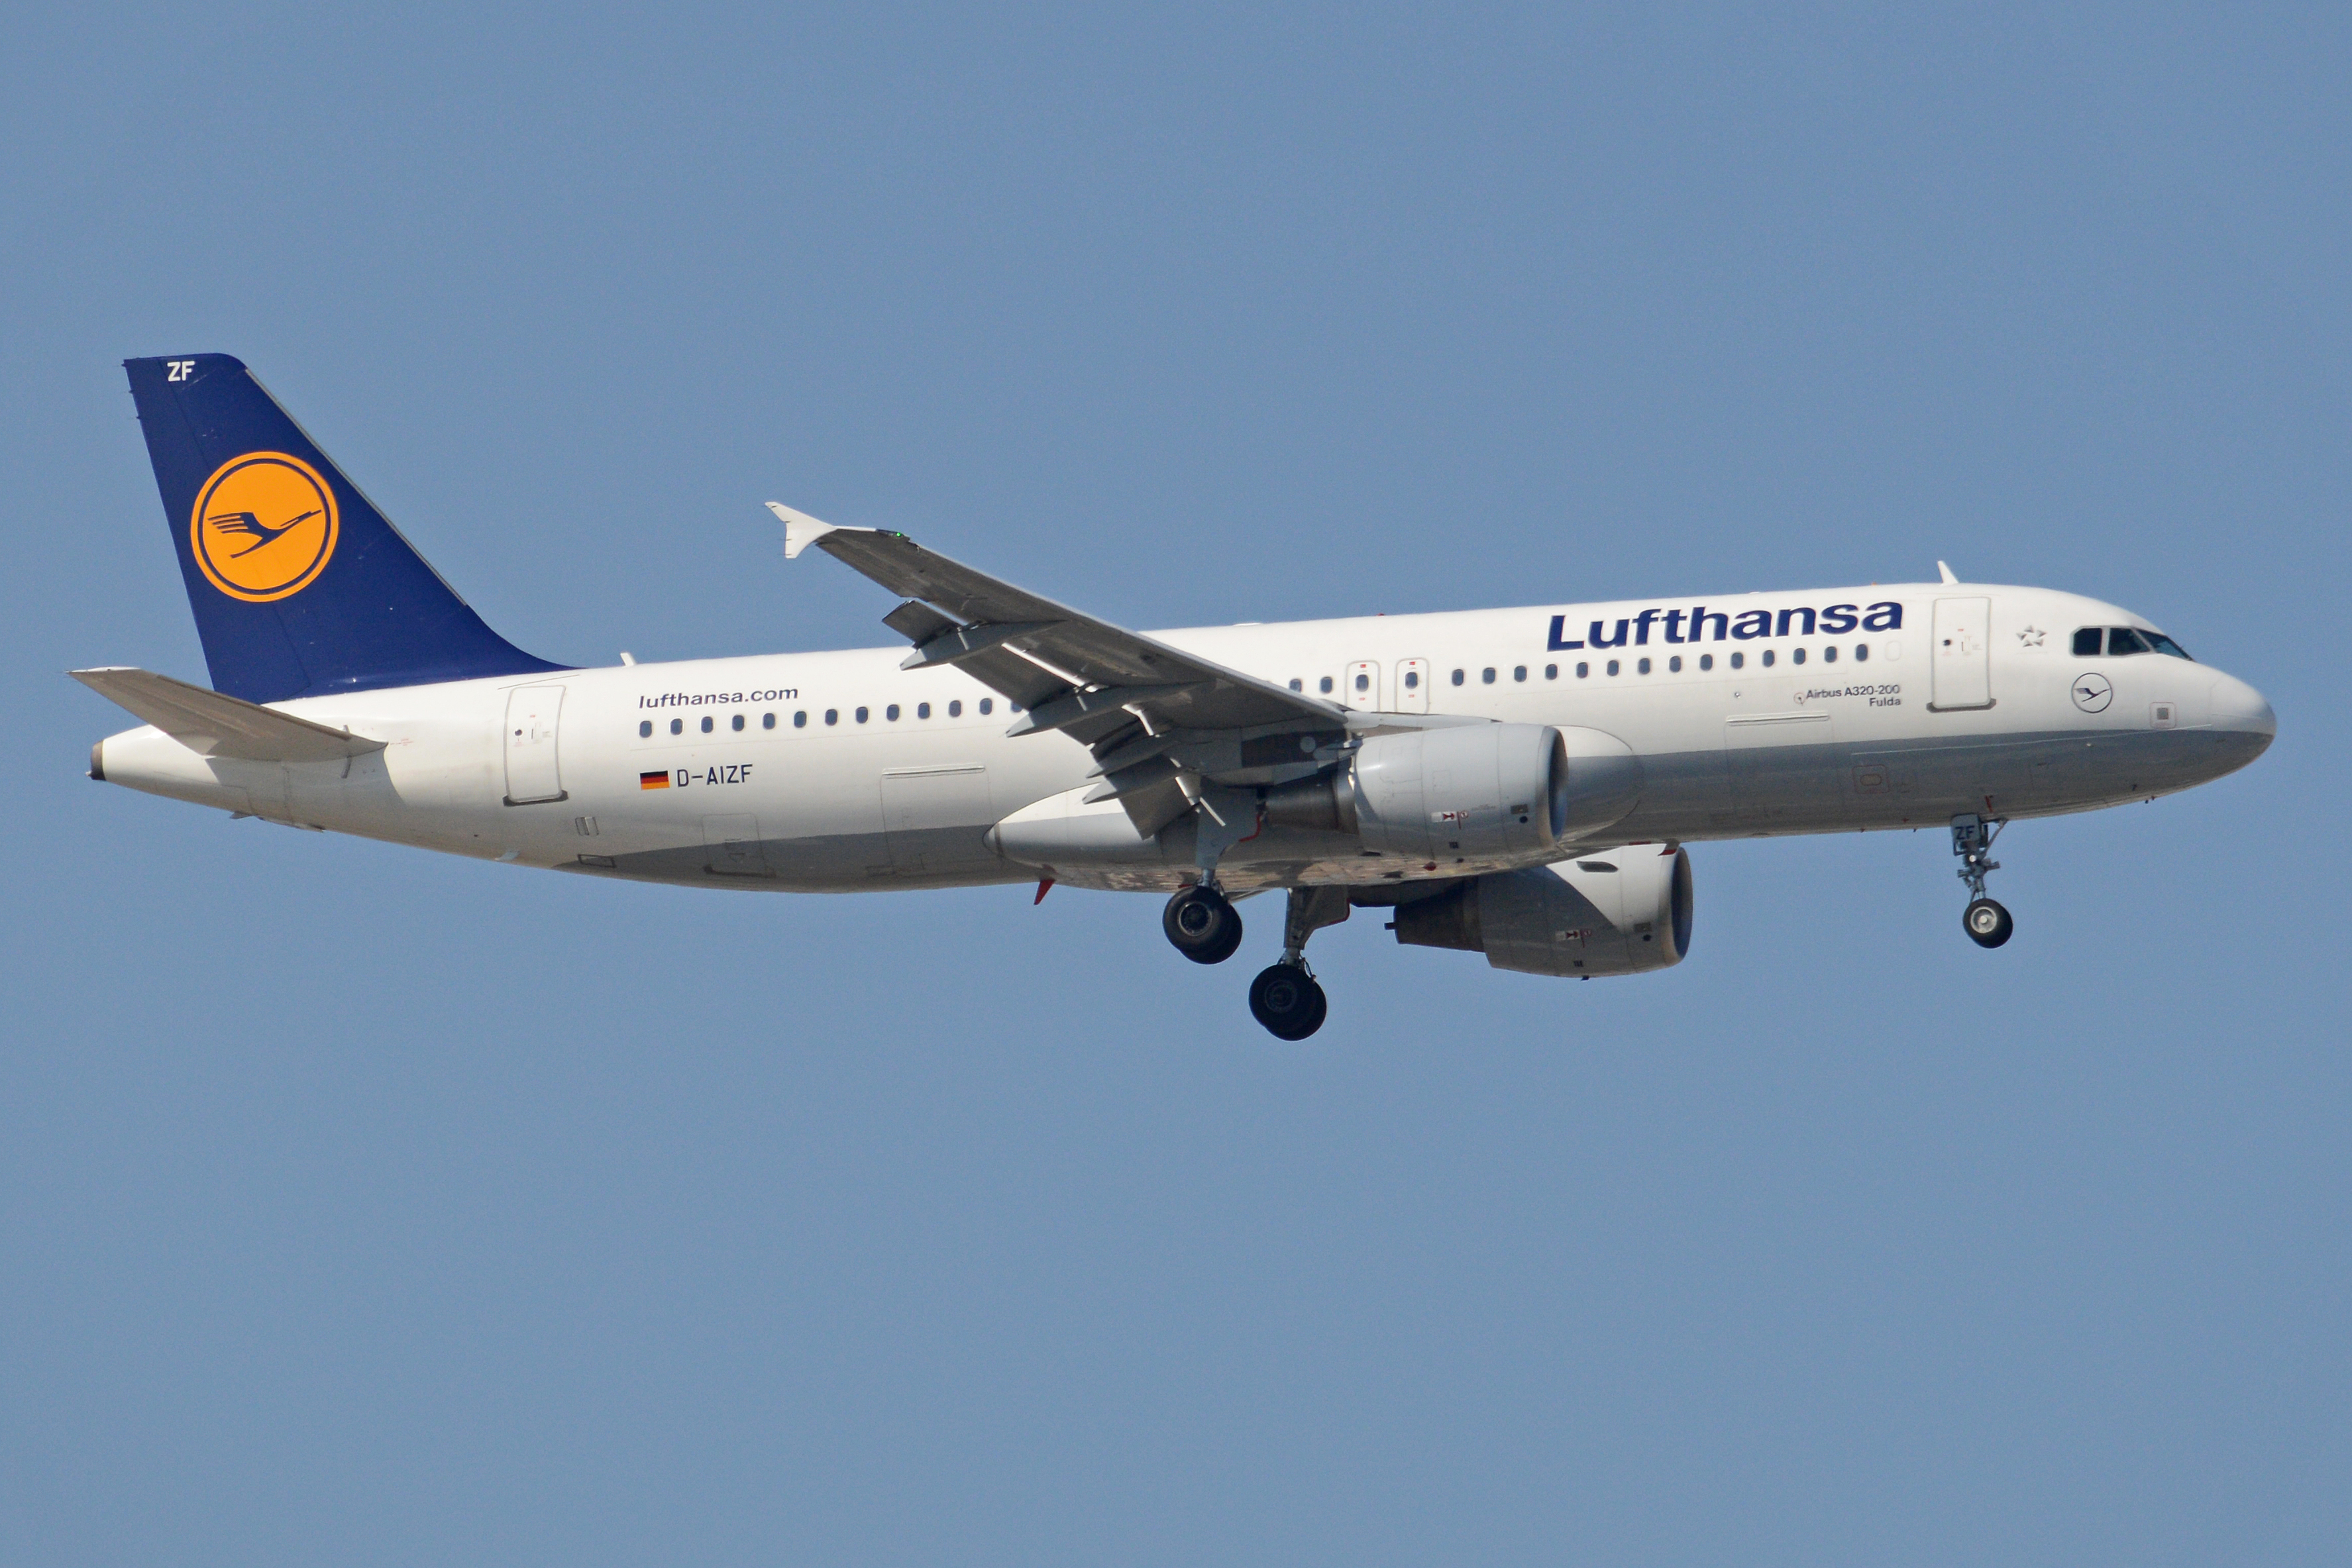 file airbus a320 214 d aizf lufthansa 32195288036 jpg wikimedia commons. Black Bedroom Furniture Sets. Home Design Ideas